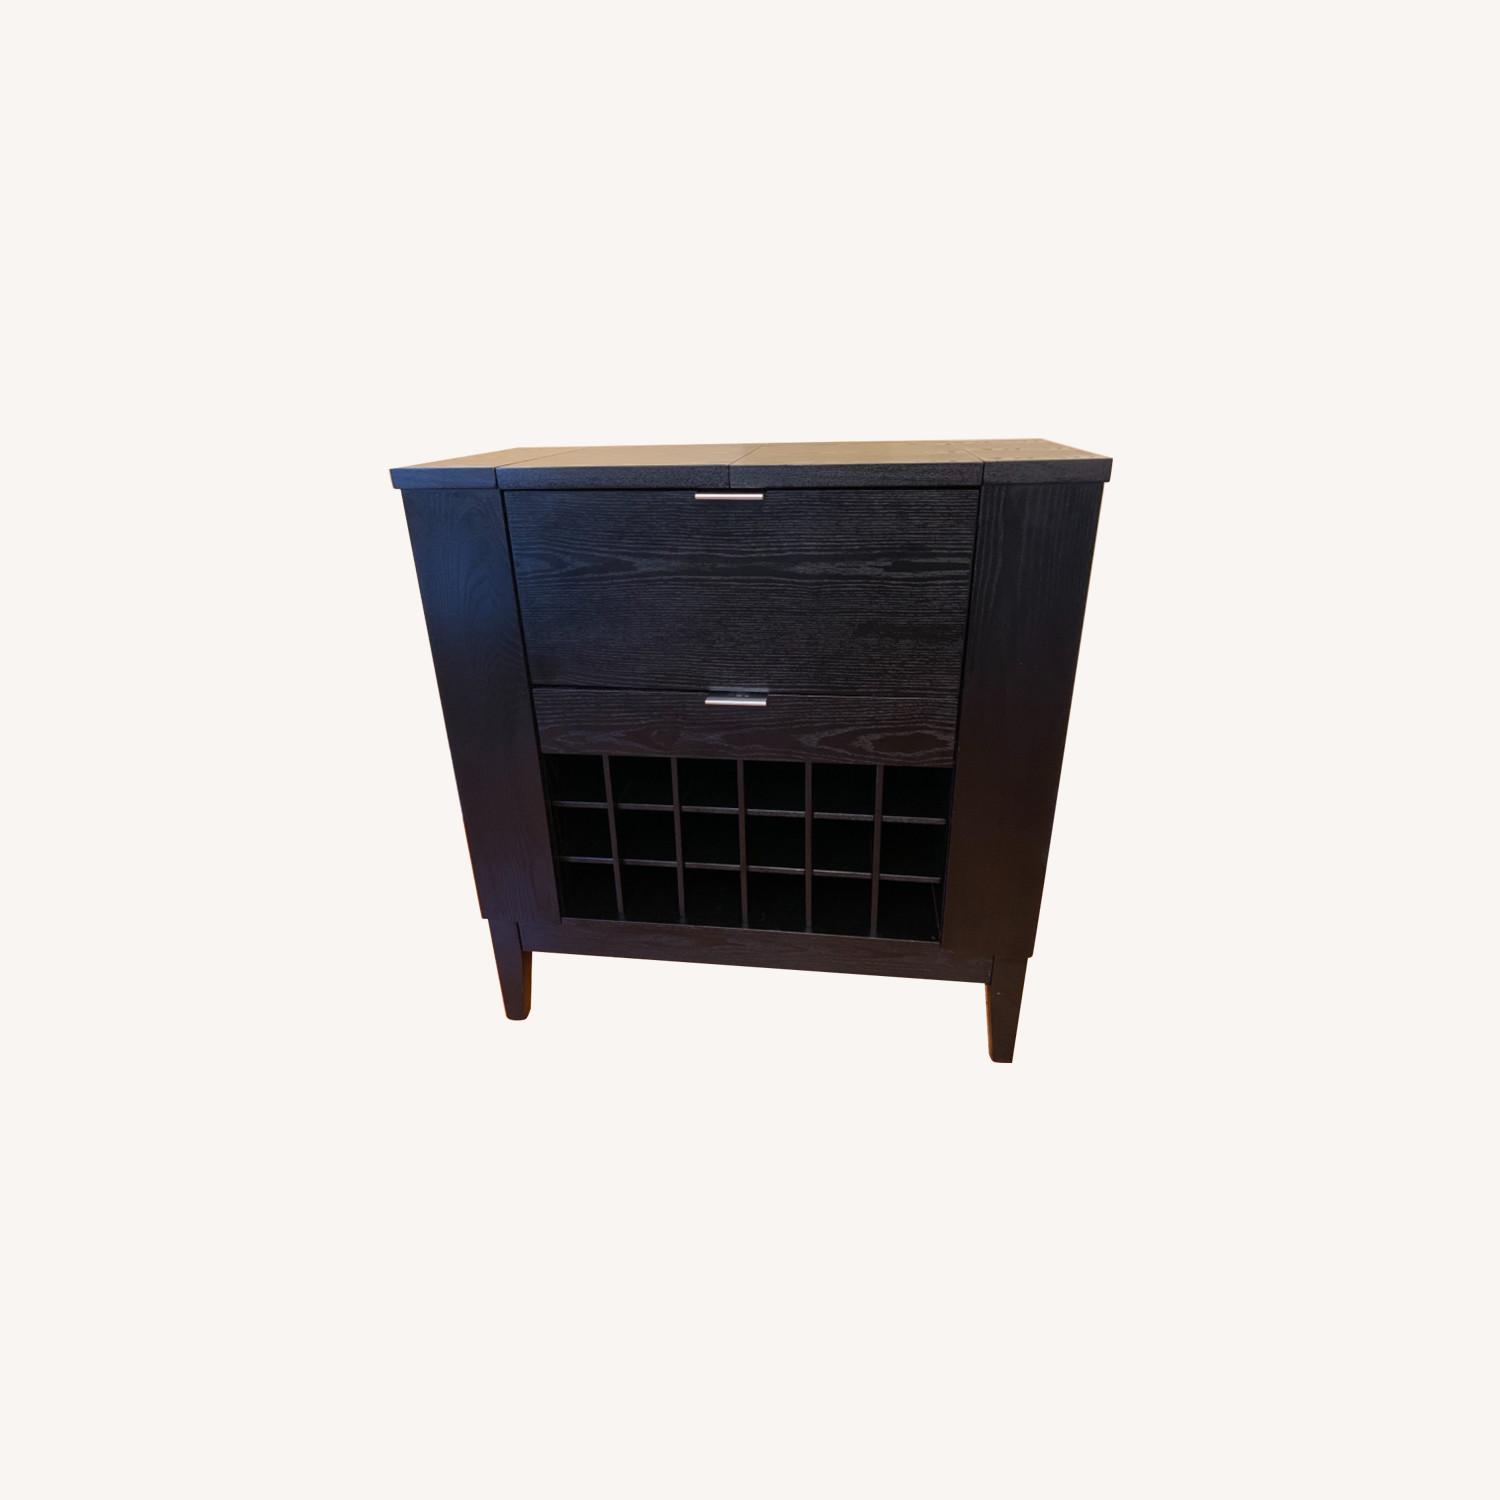 Crate & Barrel Bar & Spirits Cabinet - Espresso - image-0